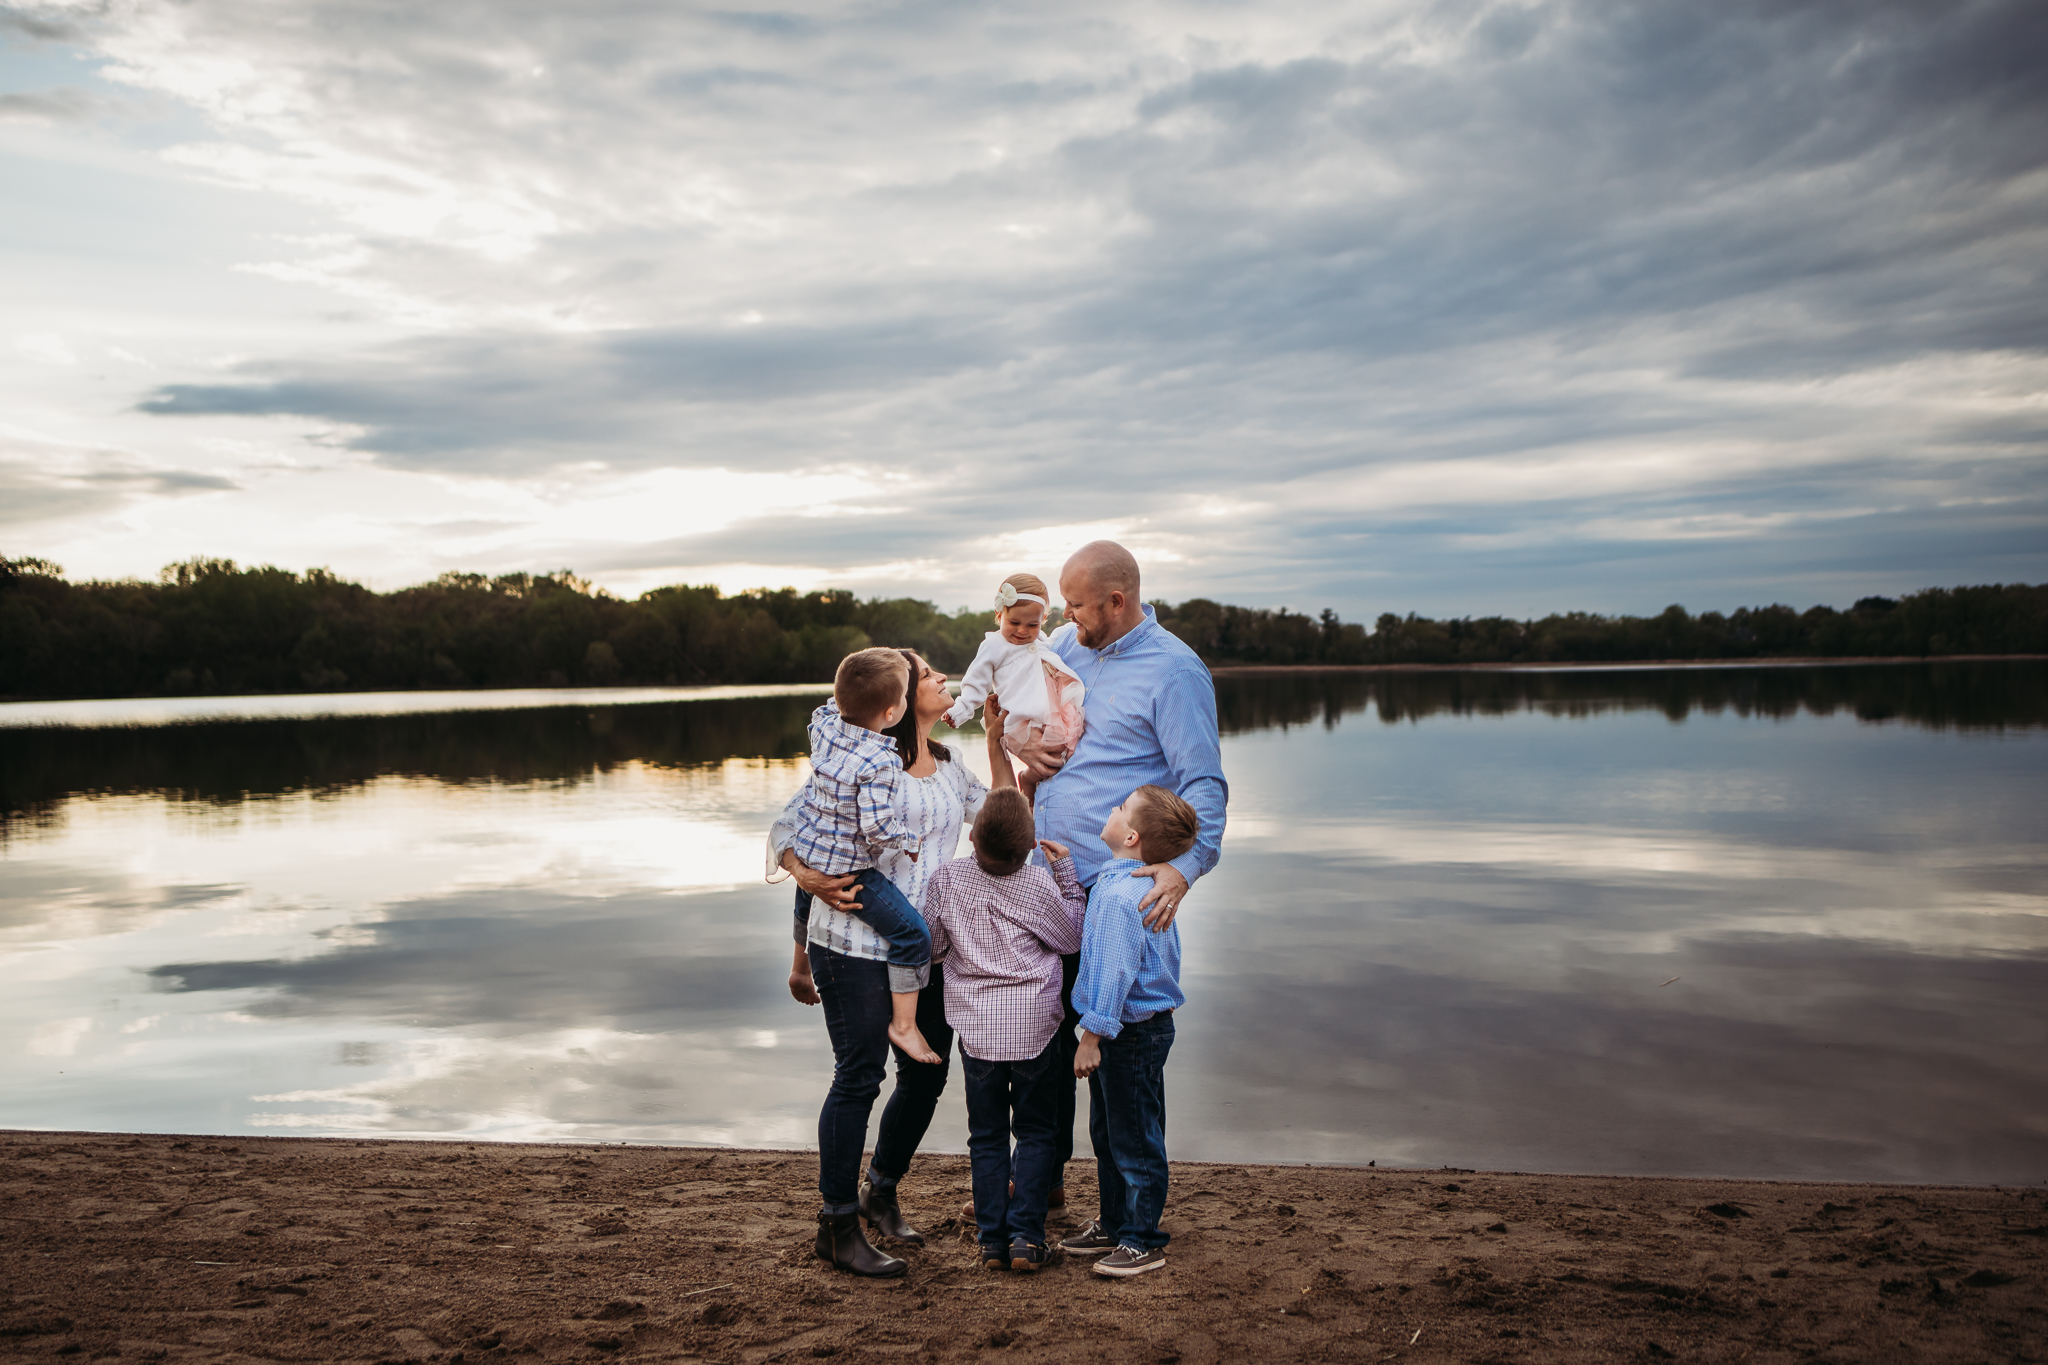 family of 5 standing by a lake  - AMG Photography